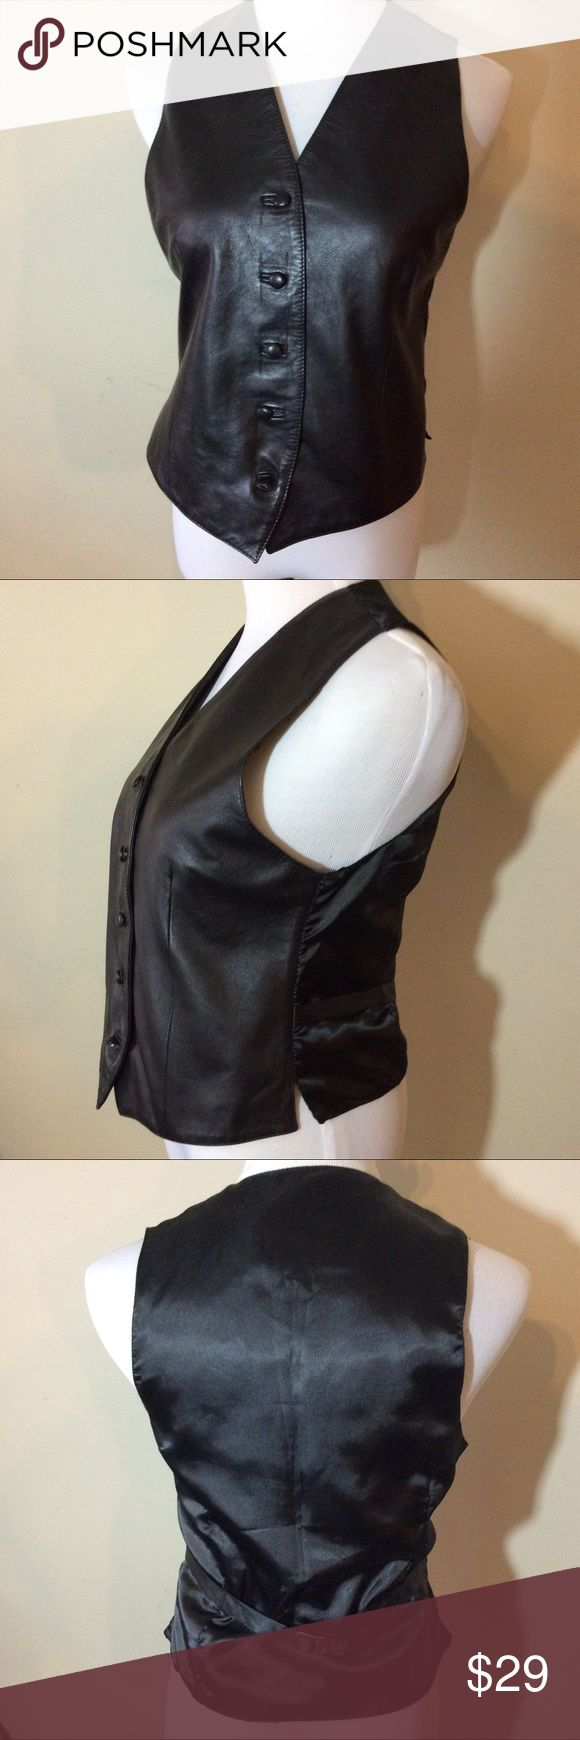 "House of Fraser UK Black Leather Vest Button Down Make this yours! Genuine Leather UK Brand House of Fraser Luxurious Black Vest! Button Down.  The Measurements: Tag Size: Medium Chest: 34"" Length: 22""   Condition: No signs of wear house of fraser Jackets & Coats Vests"